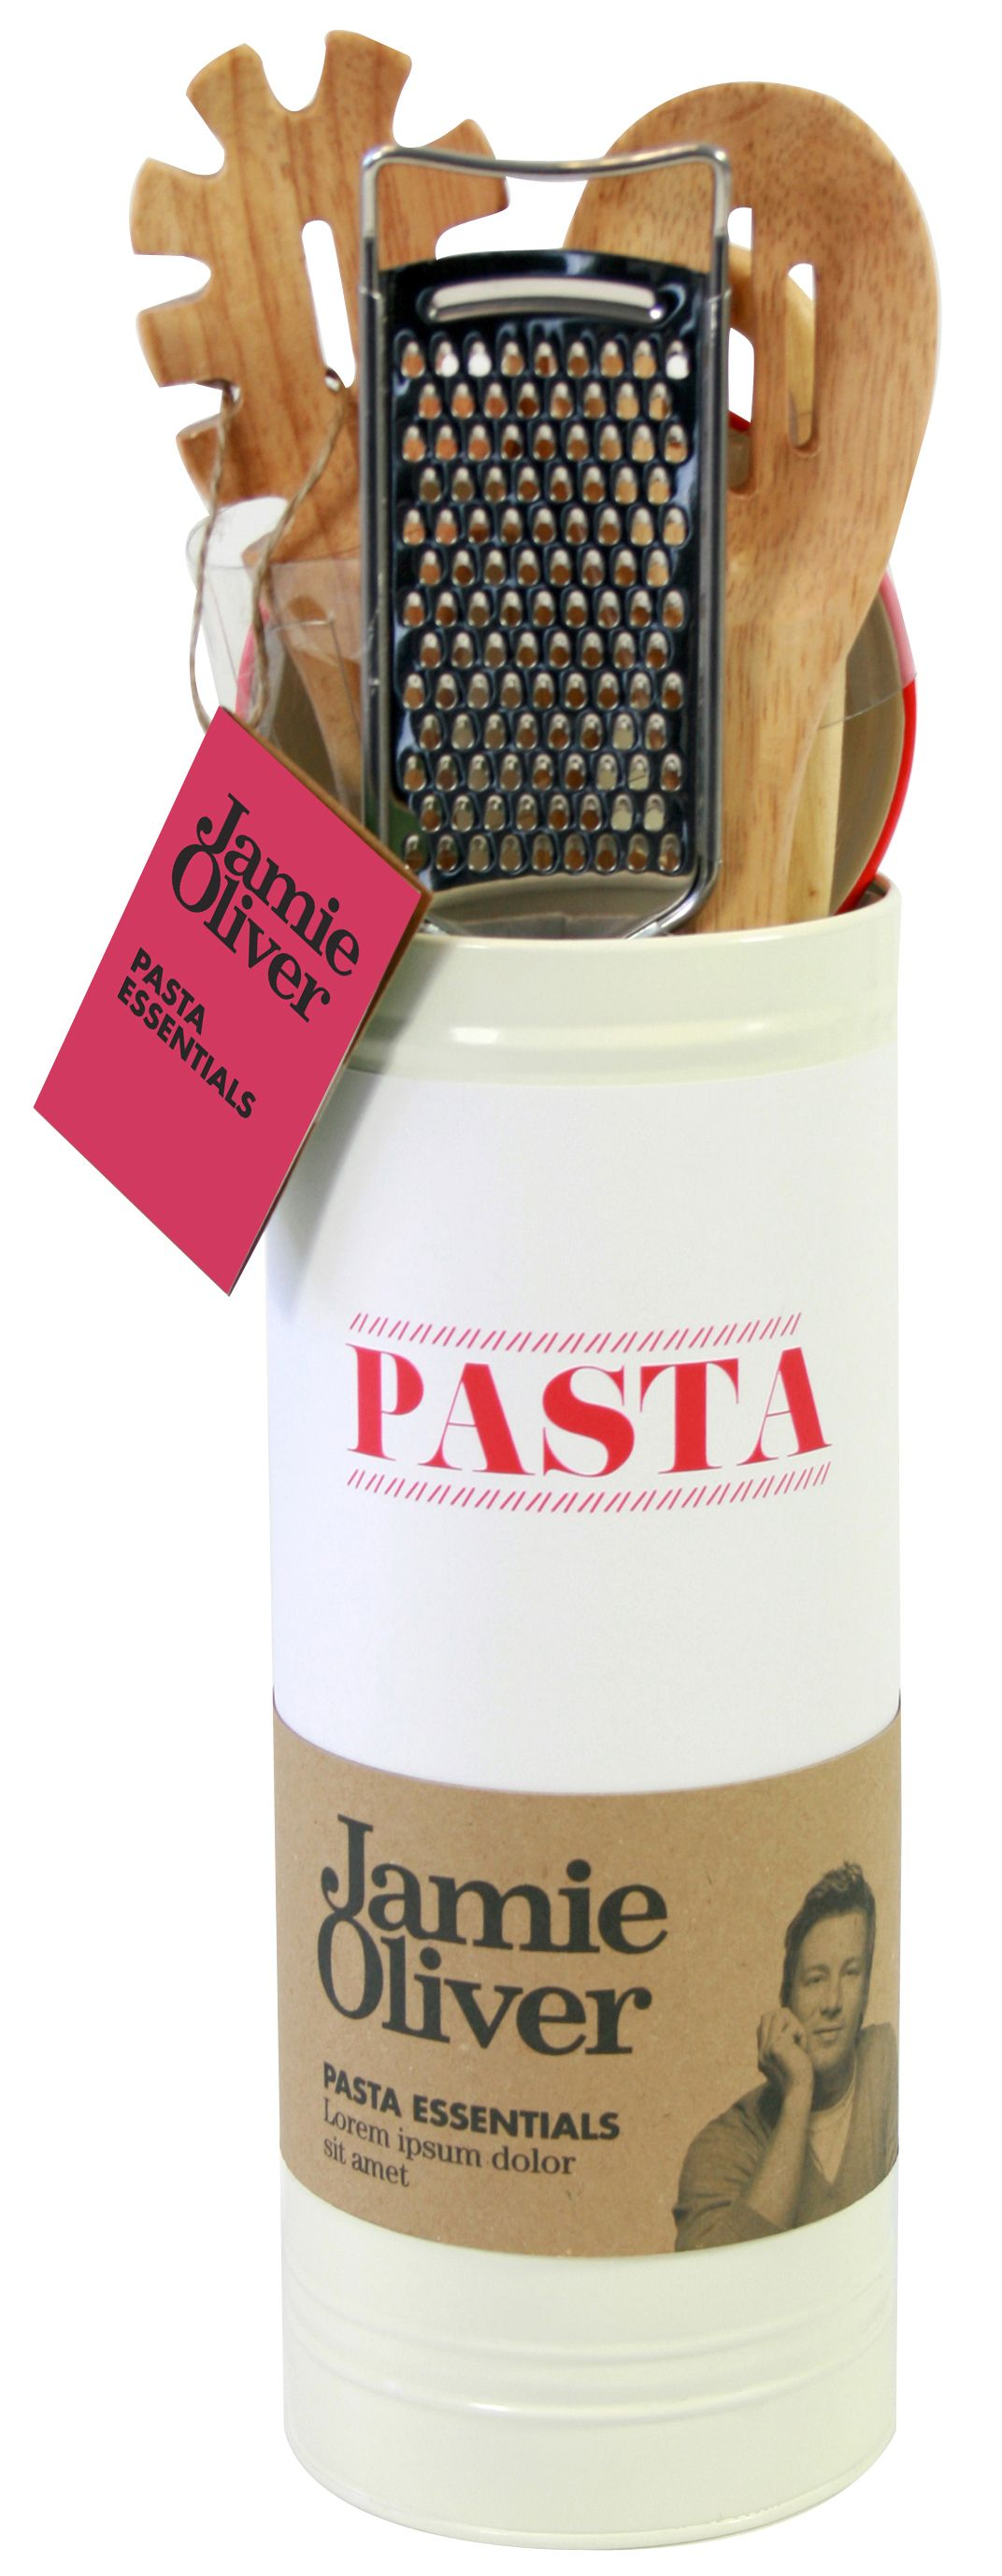 Perfect pasta kit wrapband